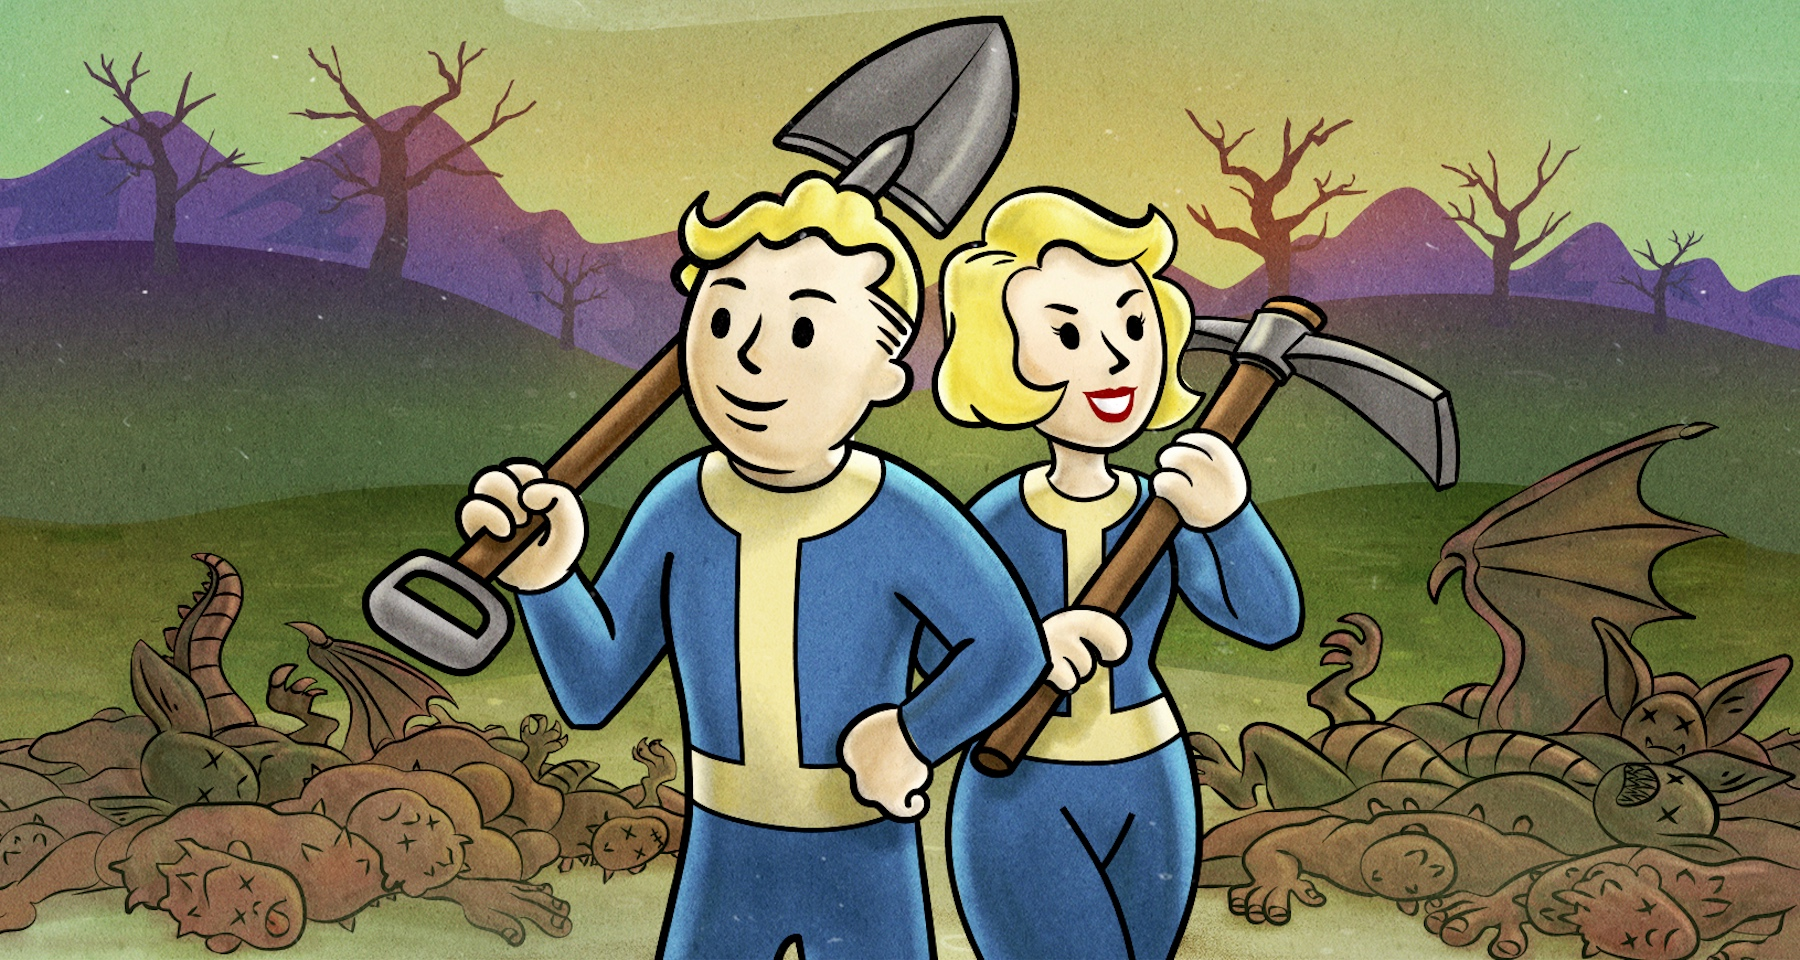 A Vault Boy and Vault Girl carrying a shovel and ax stand over corpses of monsters in an illustration from Fallout 76